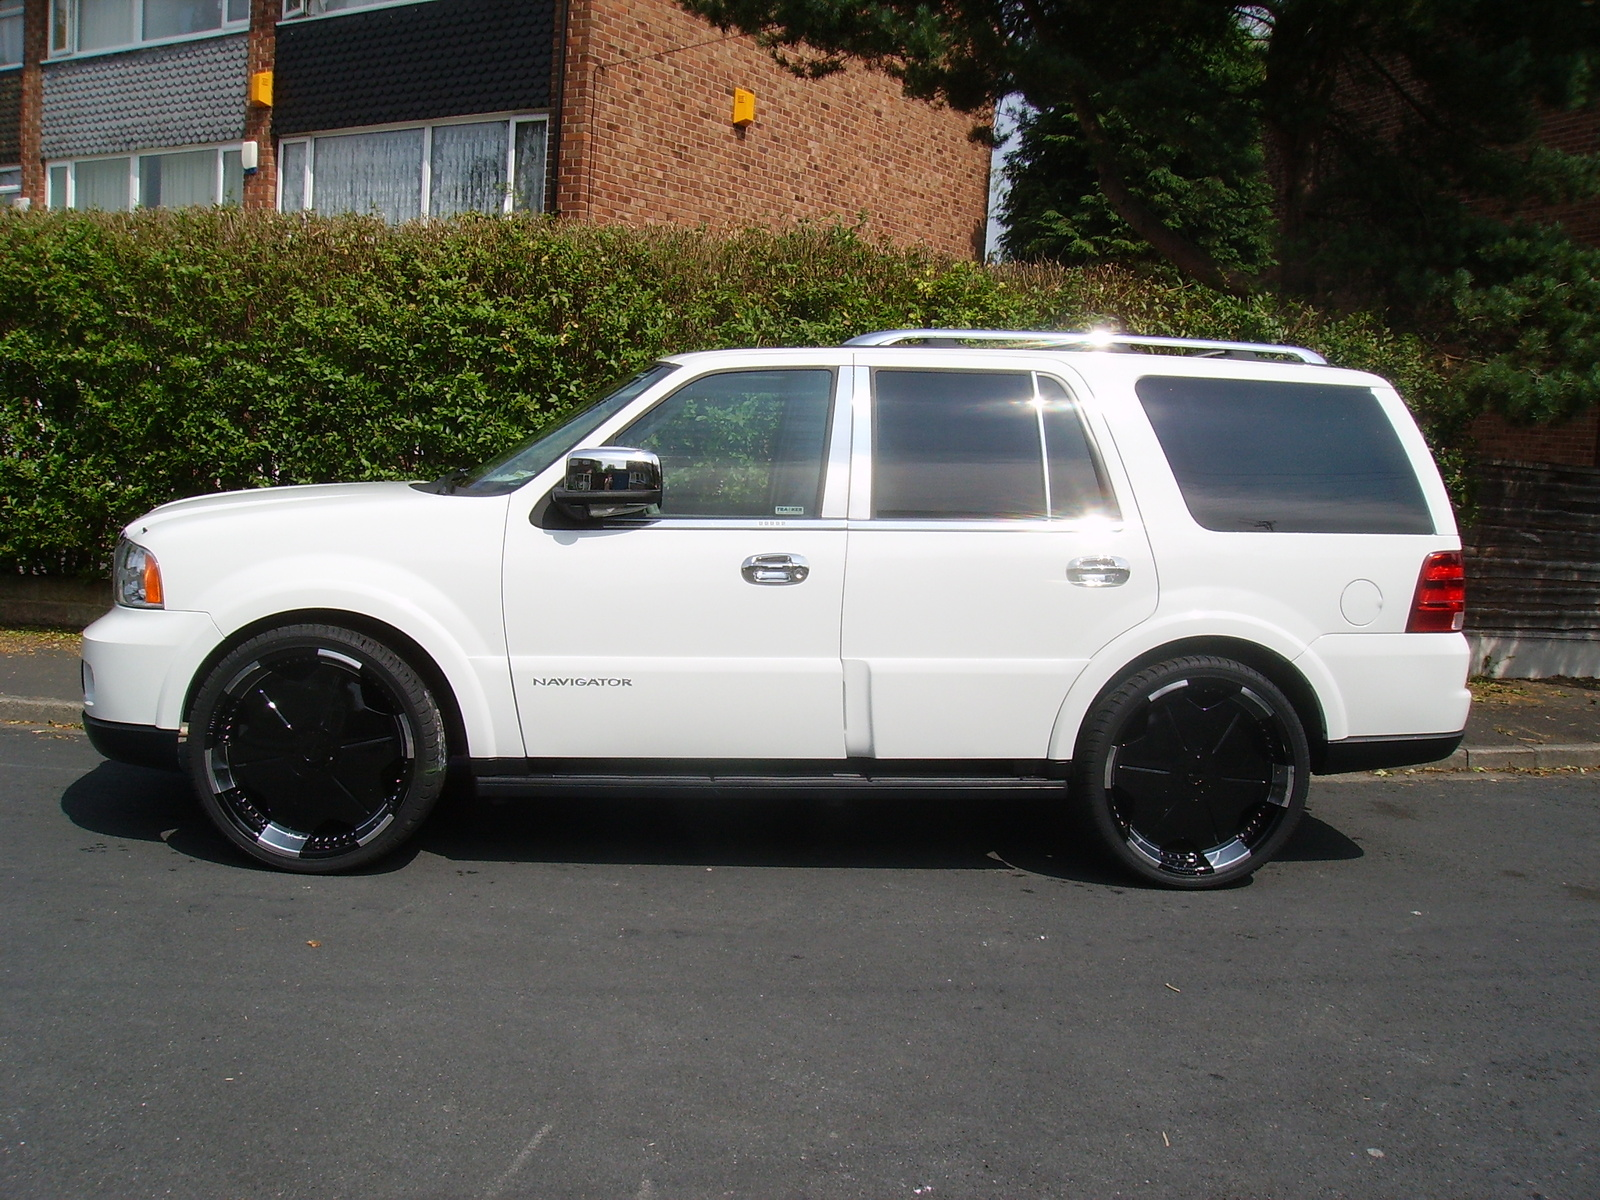 lincoln navigator body kits lincoln navigator body kits jaguar xkr wheels